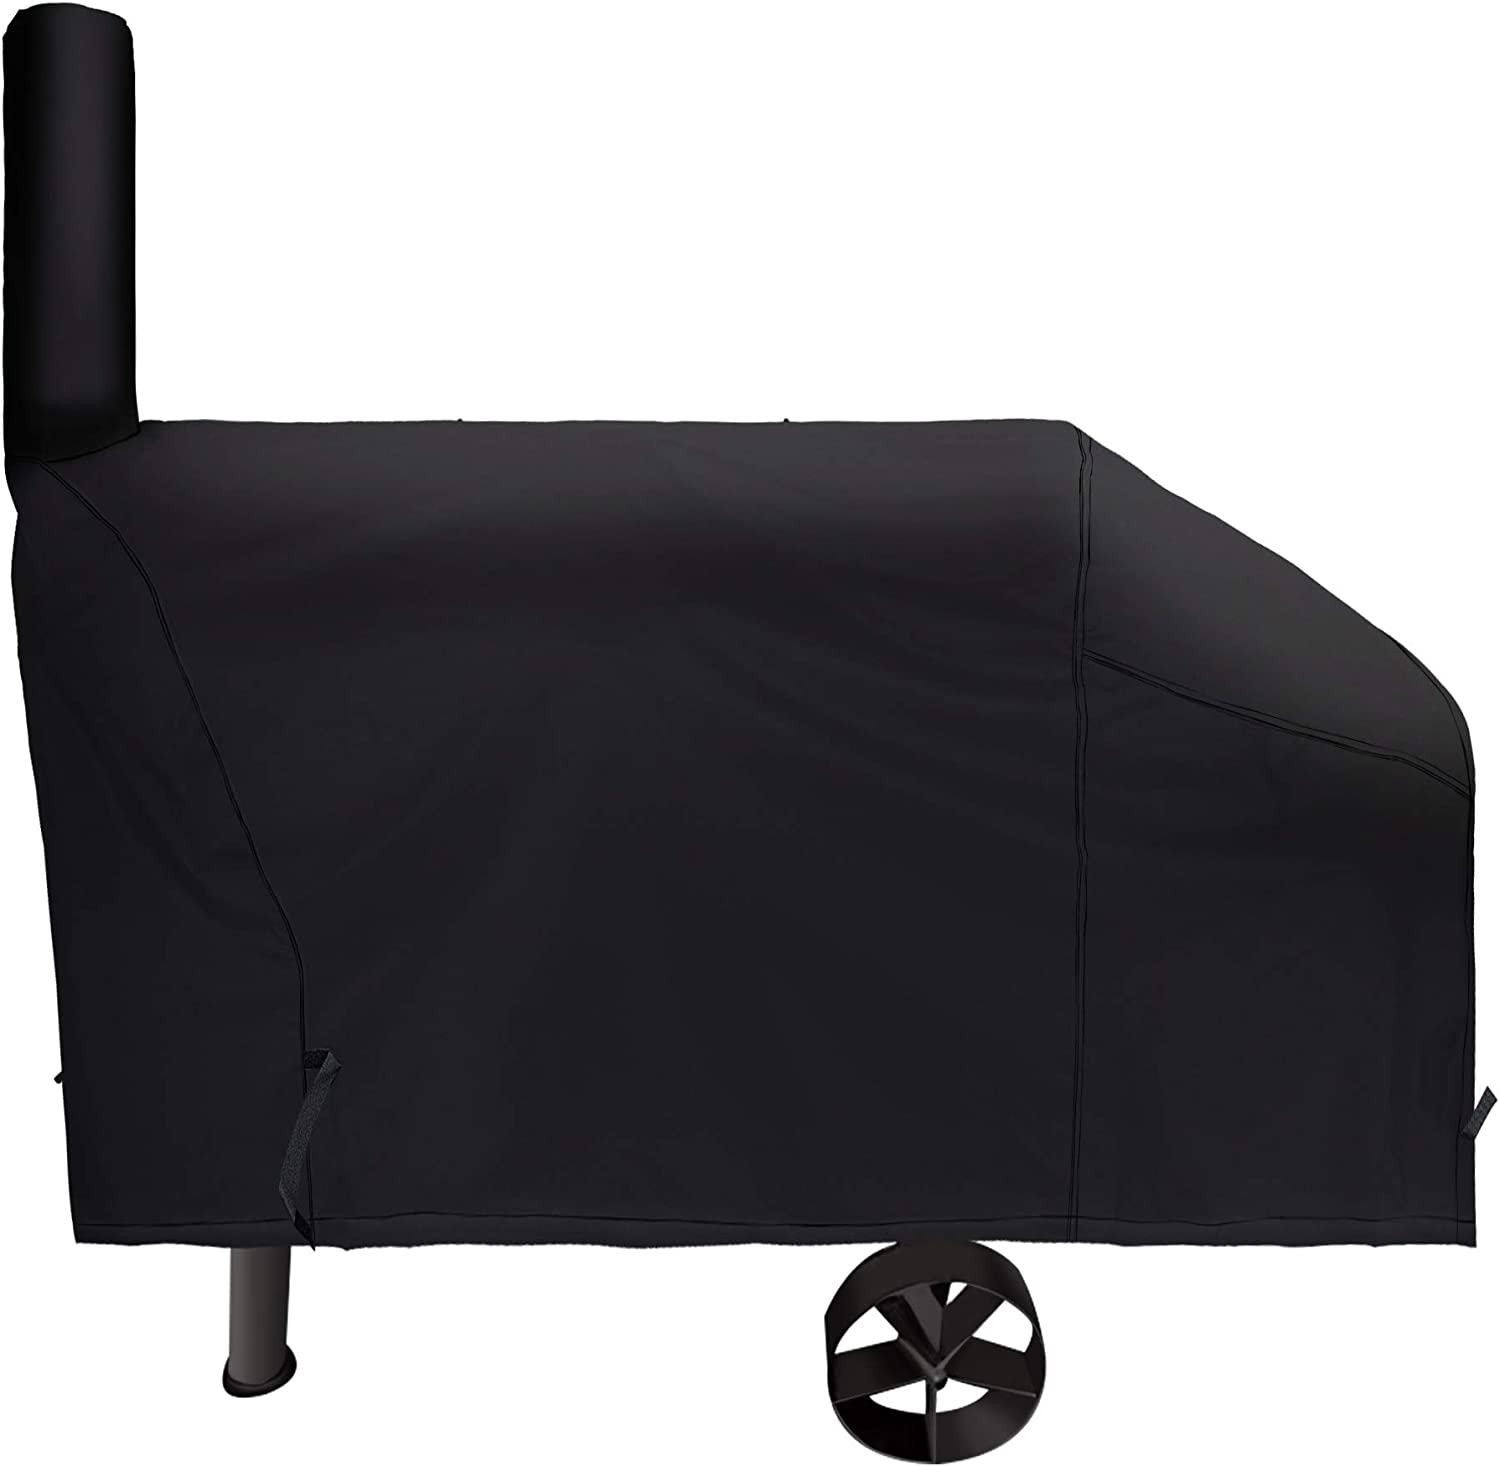 i COVER 66 Inch 600D Heavy-Duty Water Proof Patio Outdoor Canvas Offset BBQ Barbecue Smoker Cover G21610 for Brinkmann Char-Broil Char Griller Oklahoma Joe Landmann